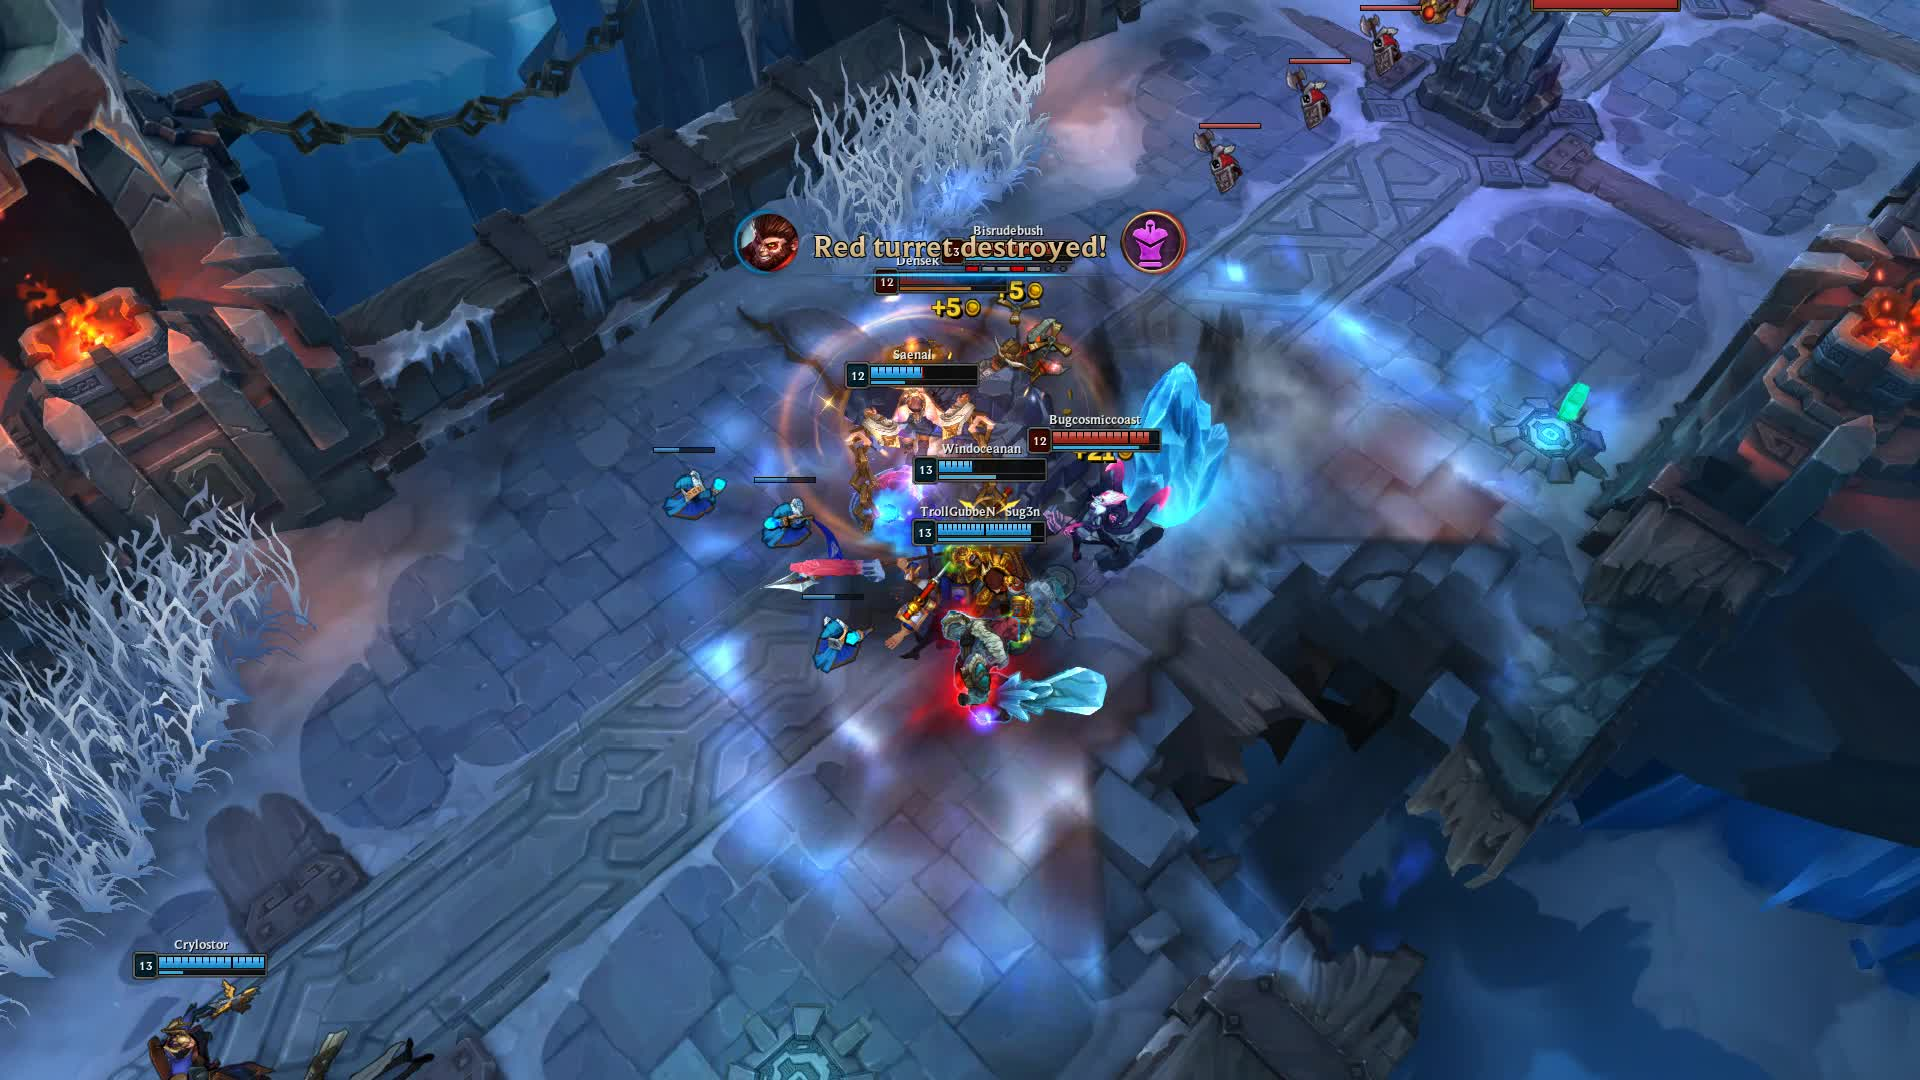 Gaming, Gif Your Game, GifYourGame, League, League of Legends, LeagueOfLegends, LoL, Penta Kill, PentaKill, TrollGubbeN, Penta Kill 1: TrollGubbeN GIFs